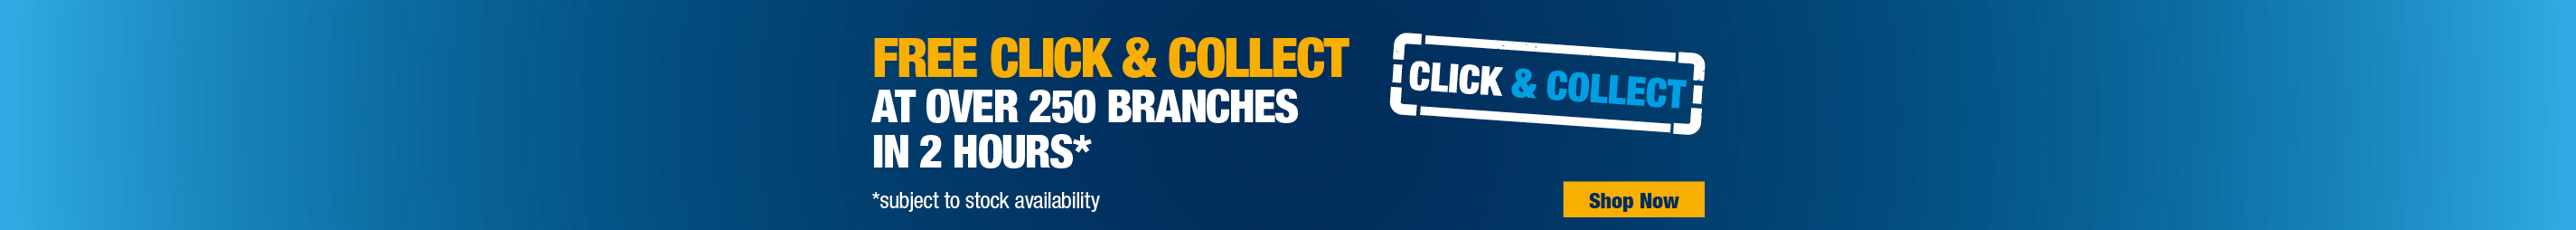 Free Click & Collect within 2 Hours